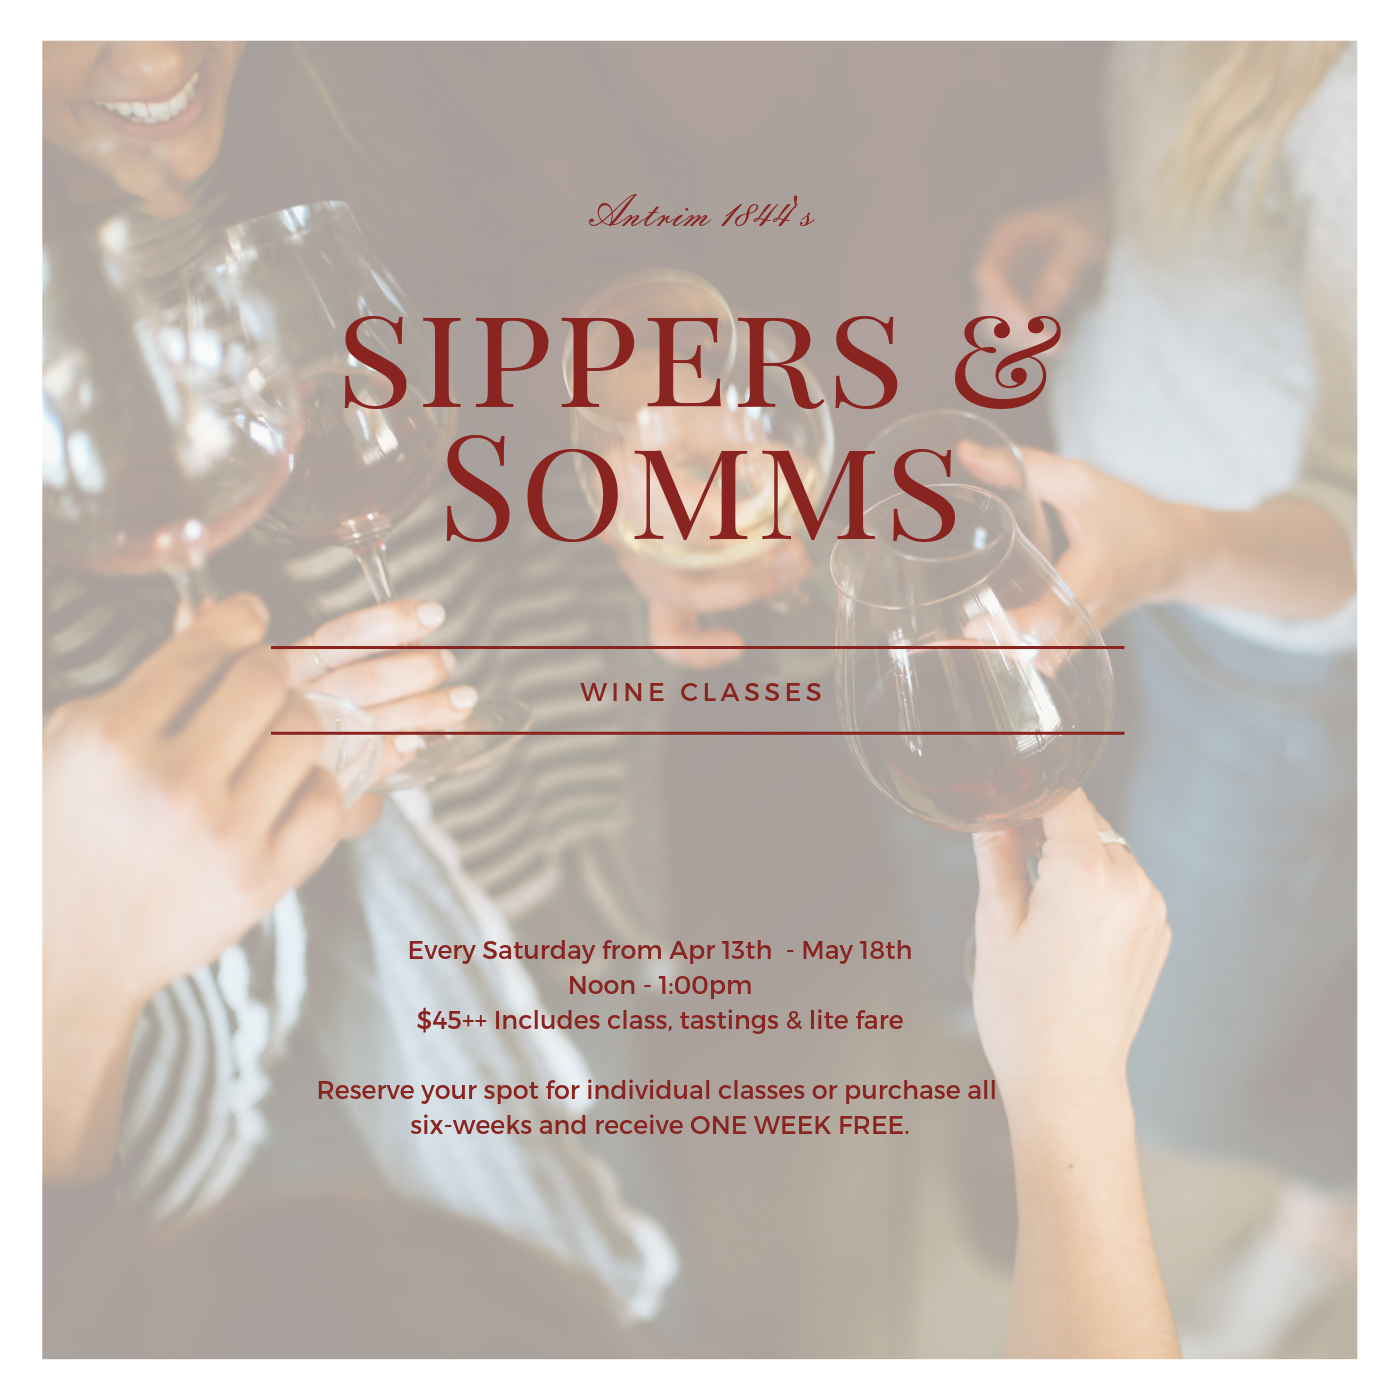 Sippers & Somms - Antrim 1844 Description.png